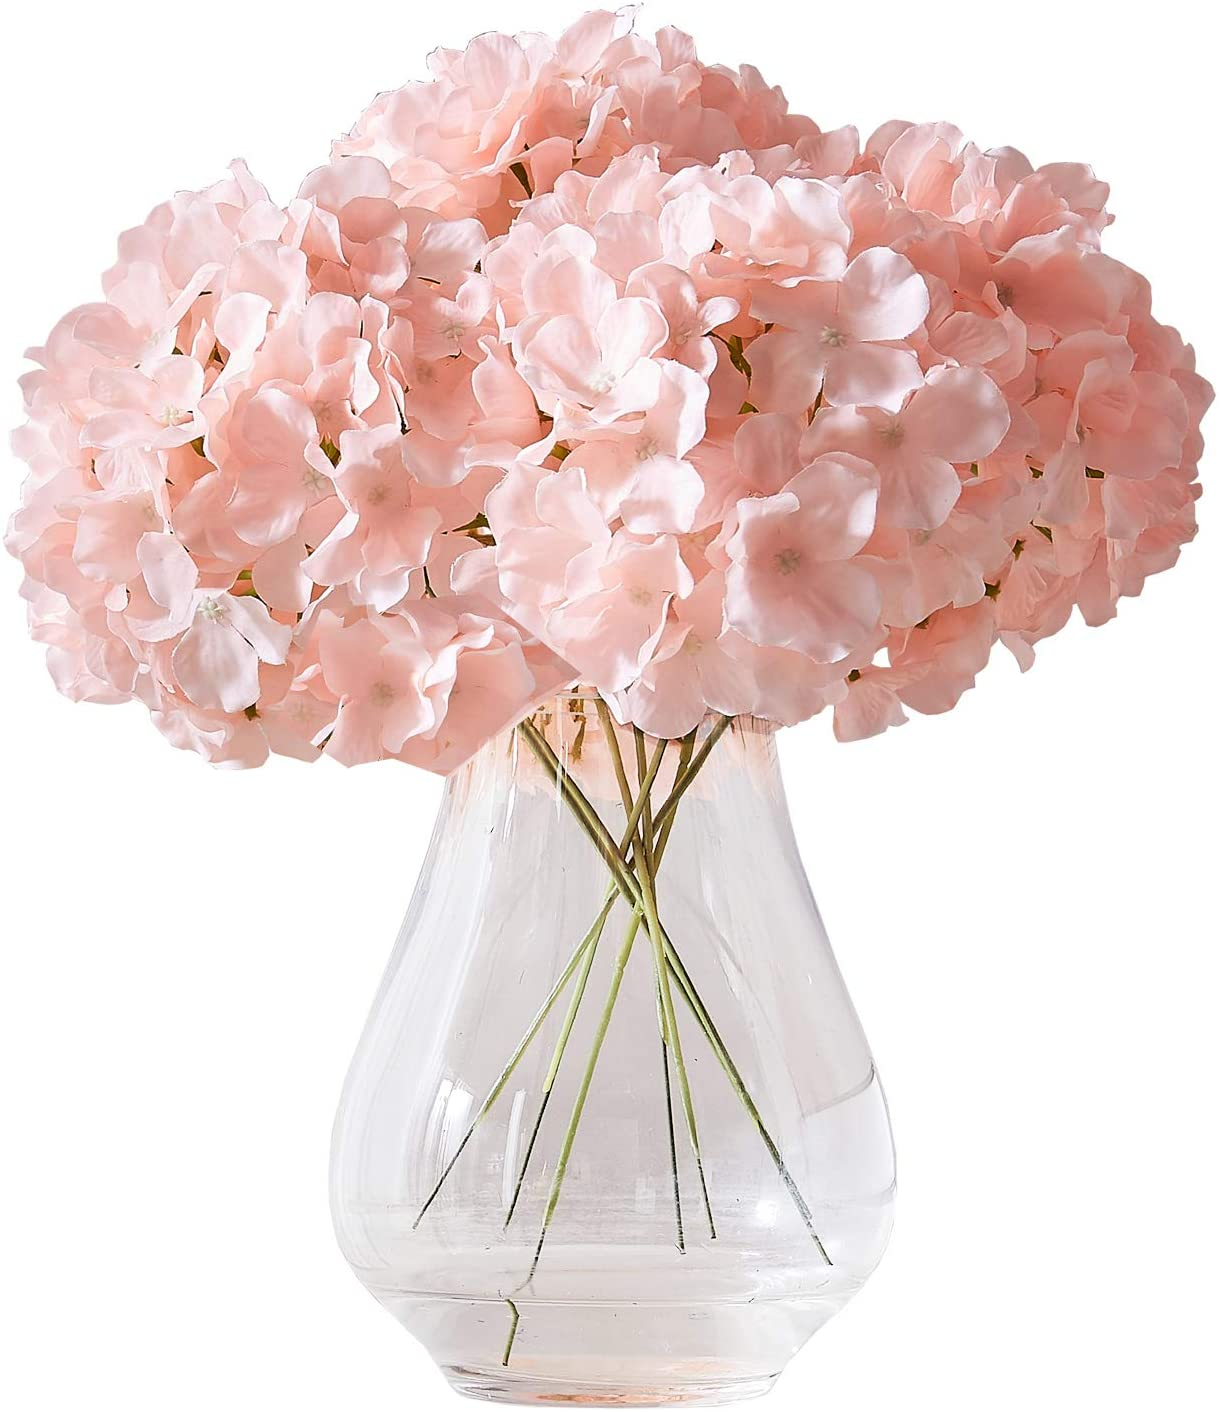 Kislohum Artificial Hydrangea Flowers Blush Heads 10 Fake Hydrangea Silk Flowers for Wedding Centerpieces Bouquets DIY Floral Decor Home Decoration with Stems